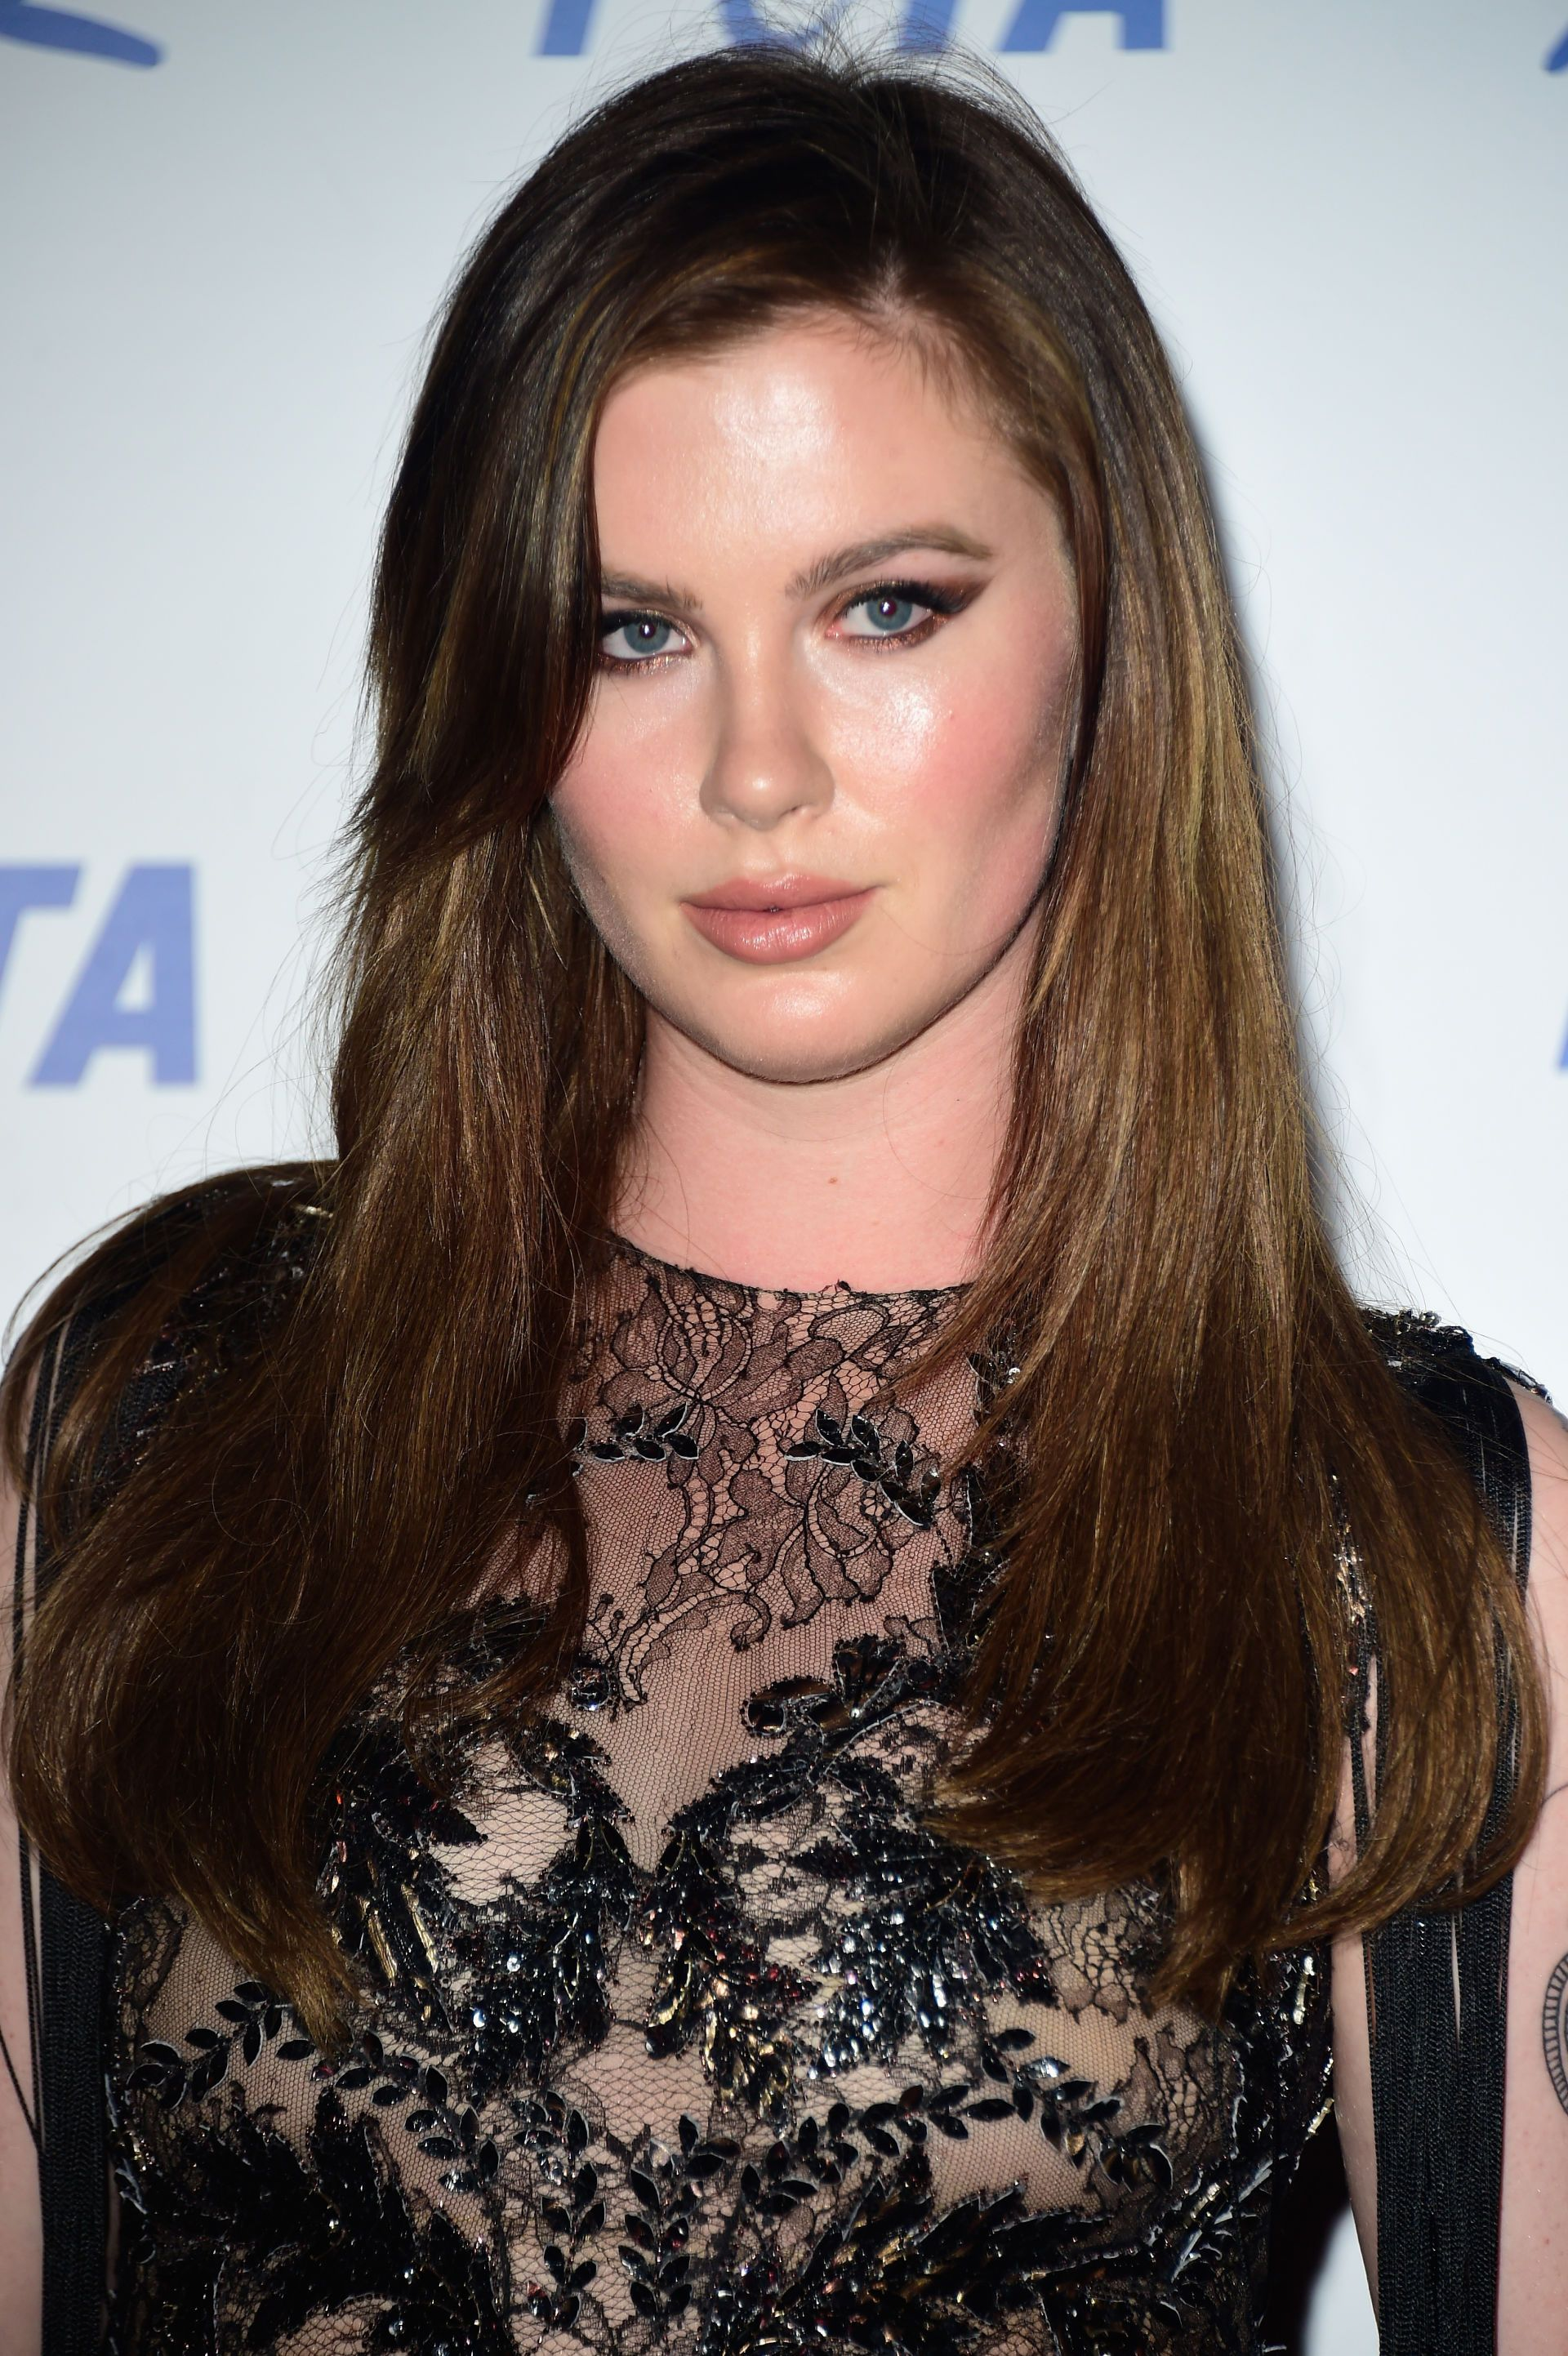 Ireland Baldwin Posted a Nude Photo on Instagram, Her Mom